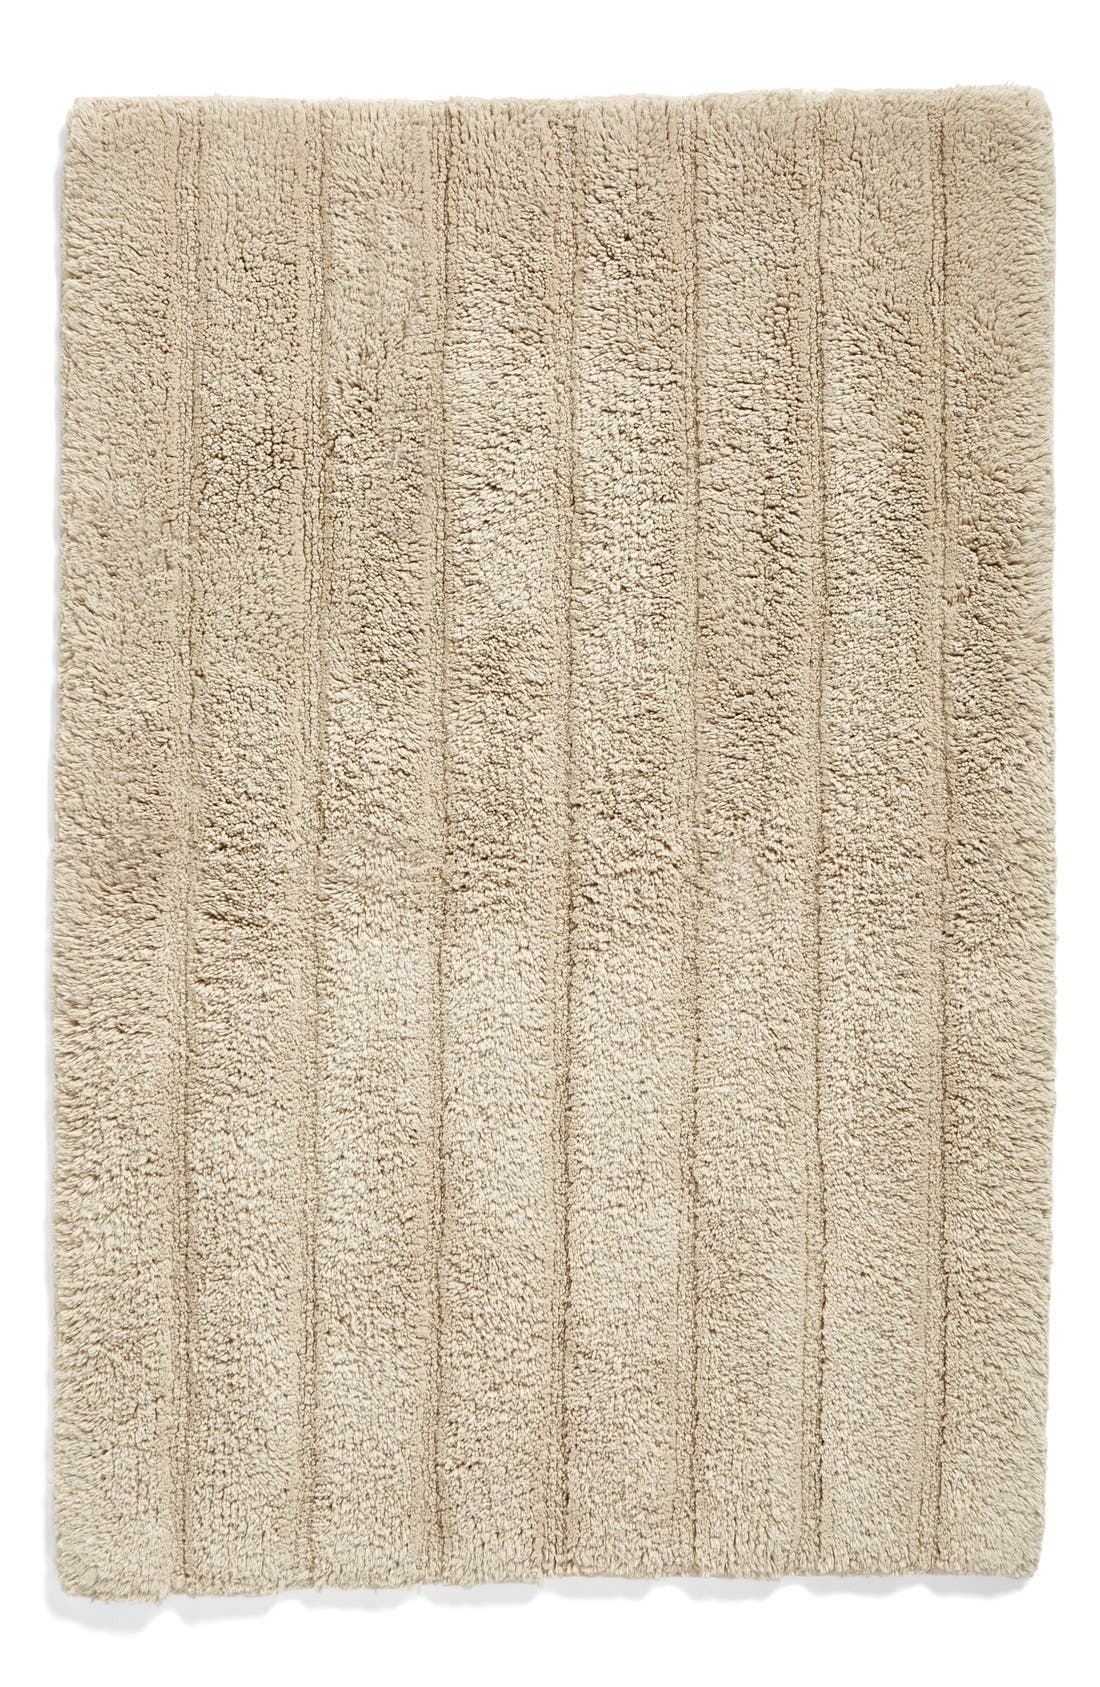 Ribbed Velour Bath Rug,                             Main thumbnail 3, color,